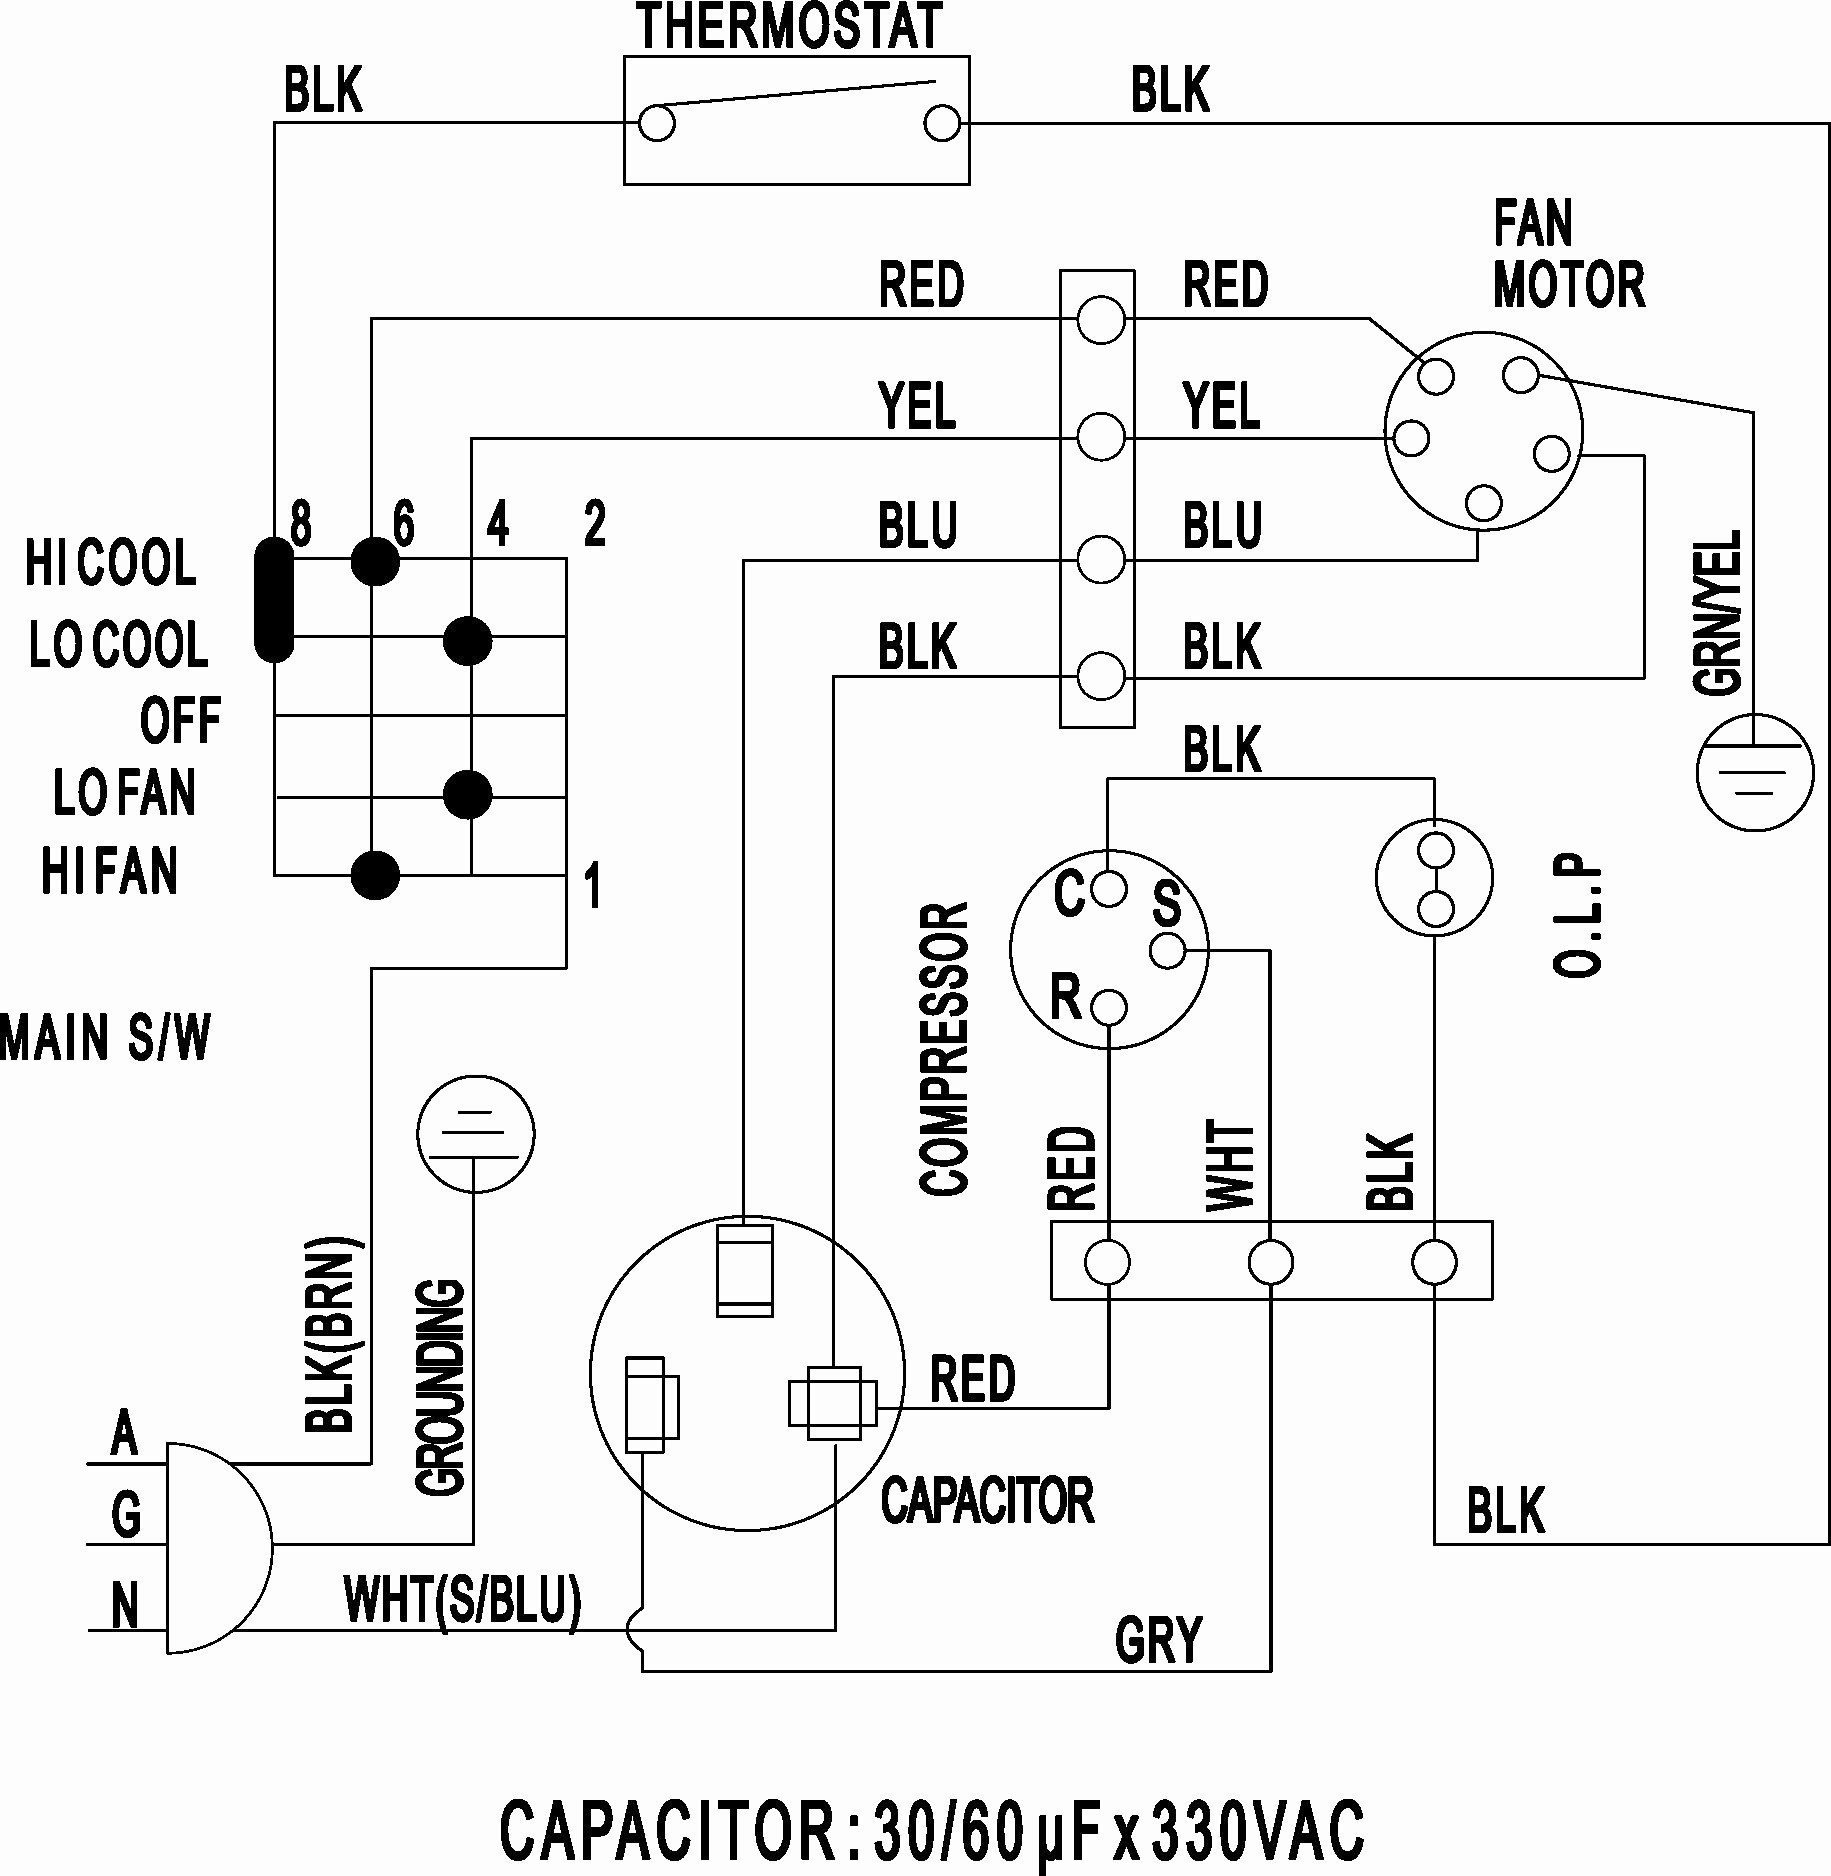 electrical wiring diagram of split ac split air conditioner wiring diagram sample wiring diagram for split ac